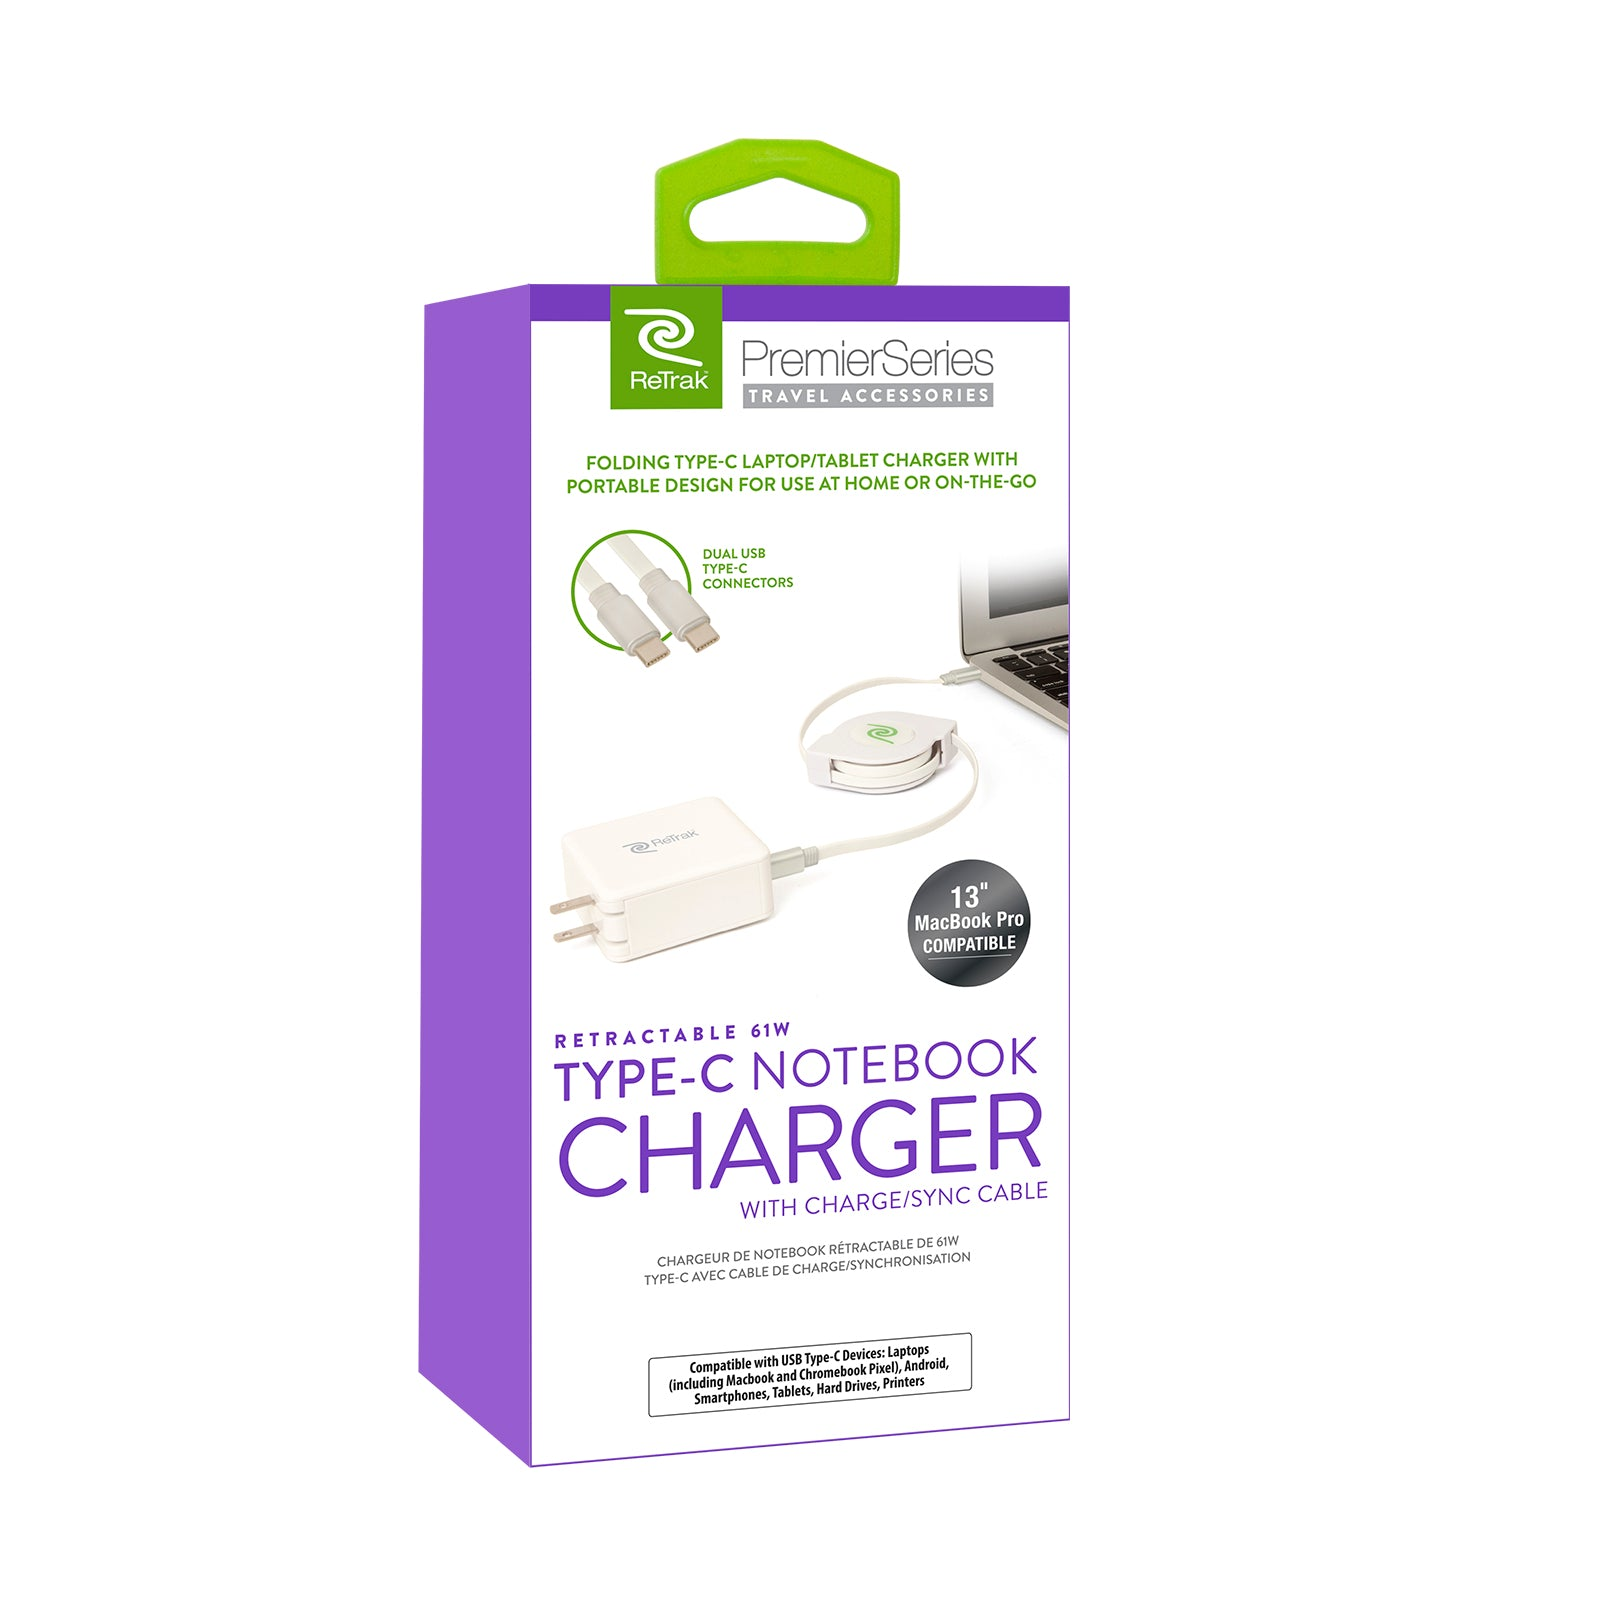 USB-C Charger Notebook | 61W Retractable Charger Cable